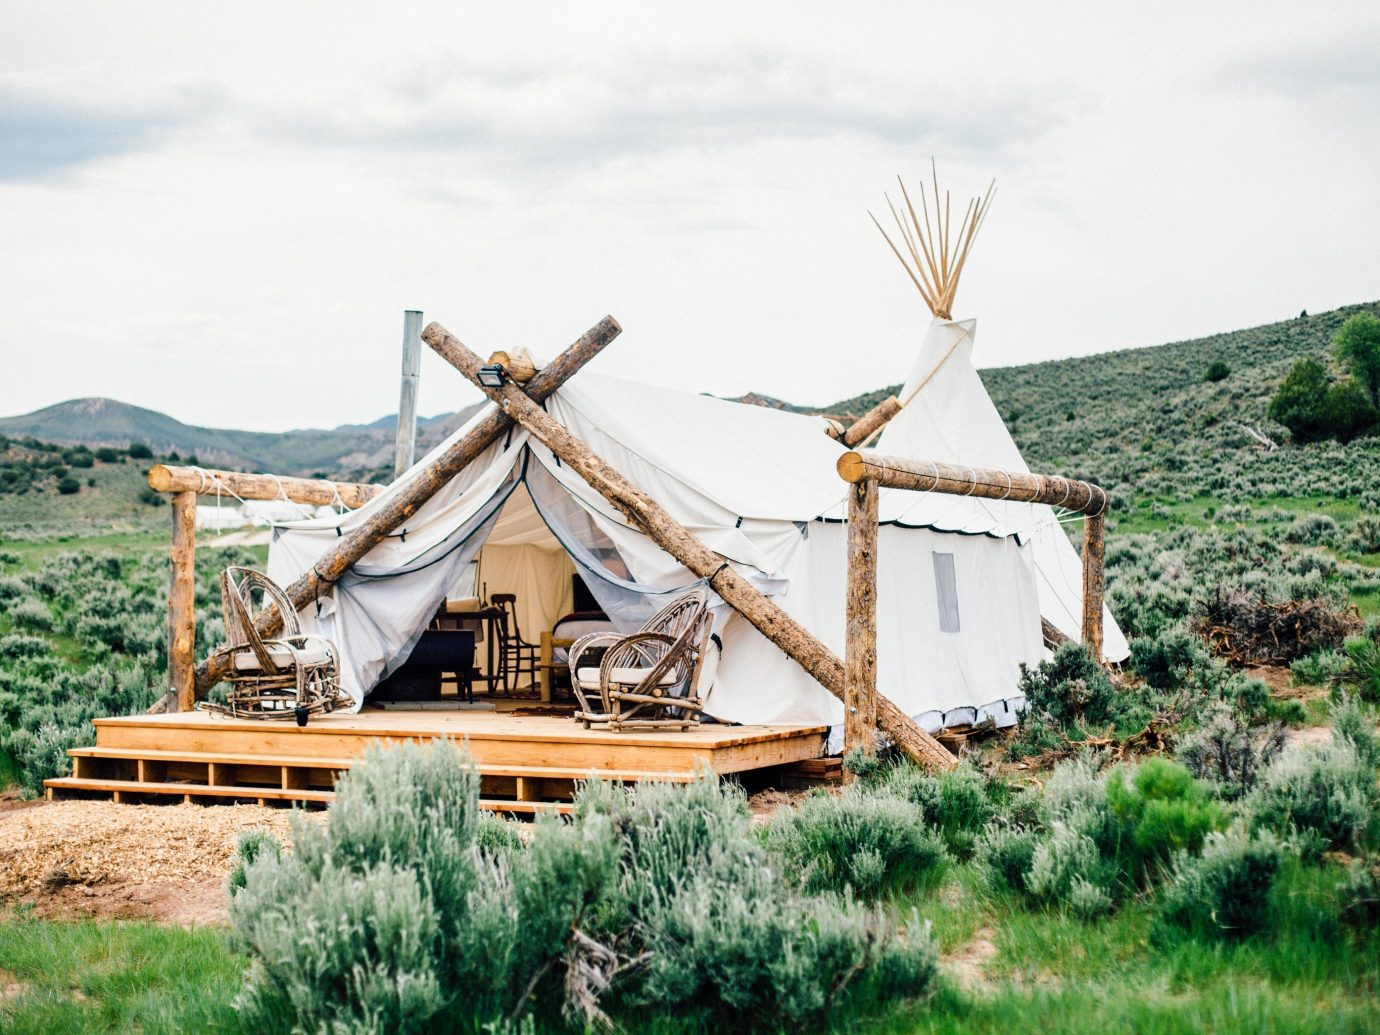 Glamping Luxury Travel New York Trip Ideas windmill rural area hut sky home house cottage mill tree roof landscape